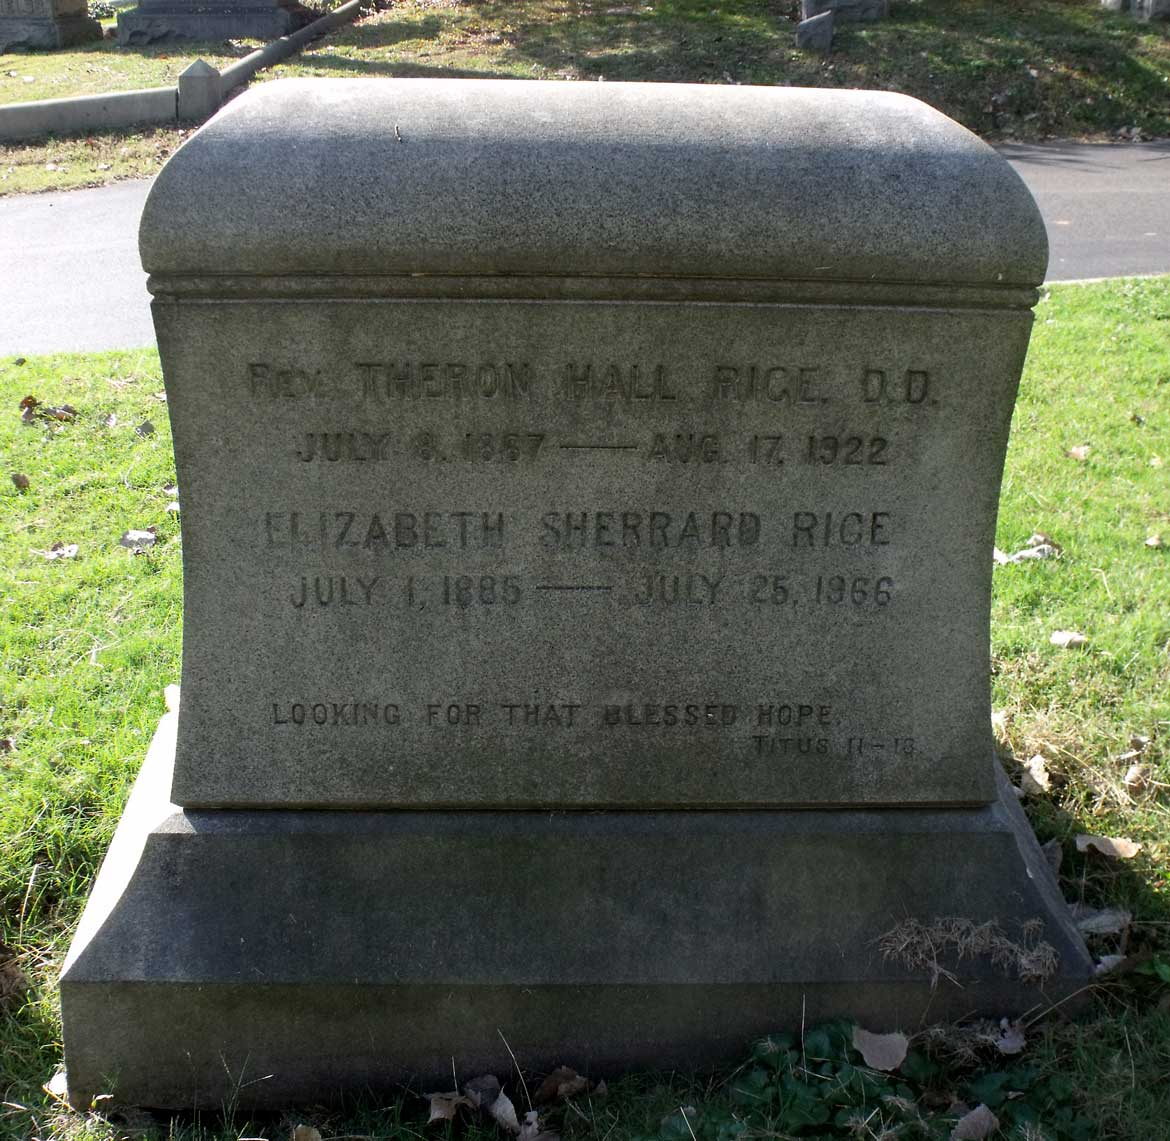 Theron Hall Rice, Jr. is buried at Hollywood Cemetery, Richmond, Virginia.